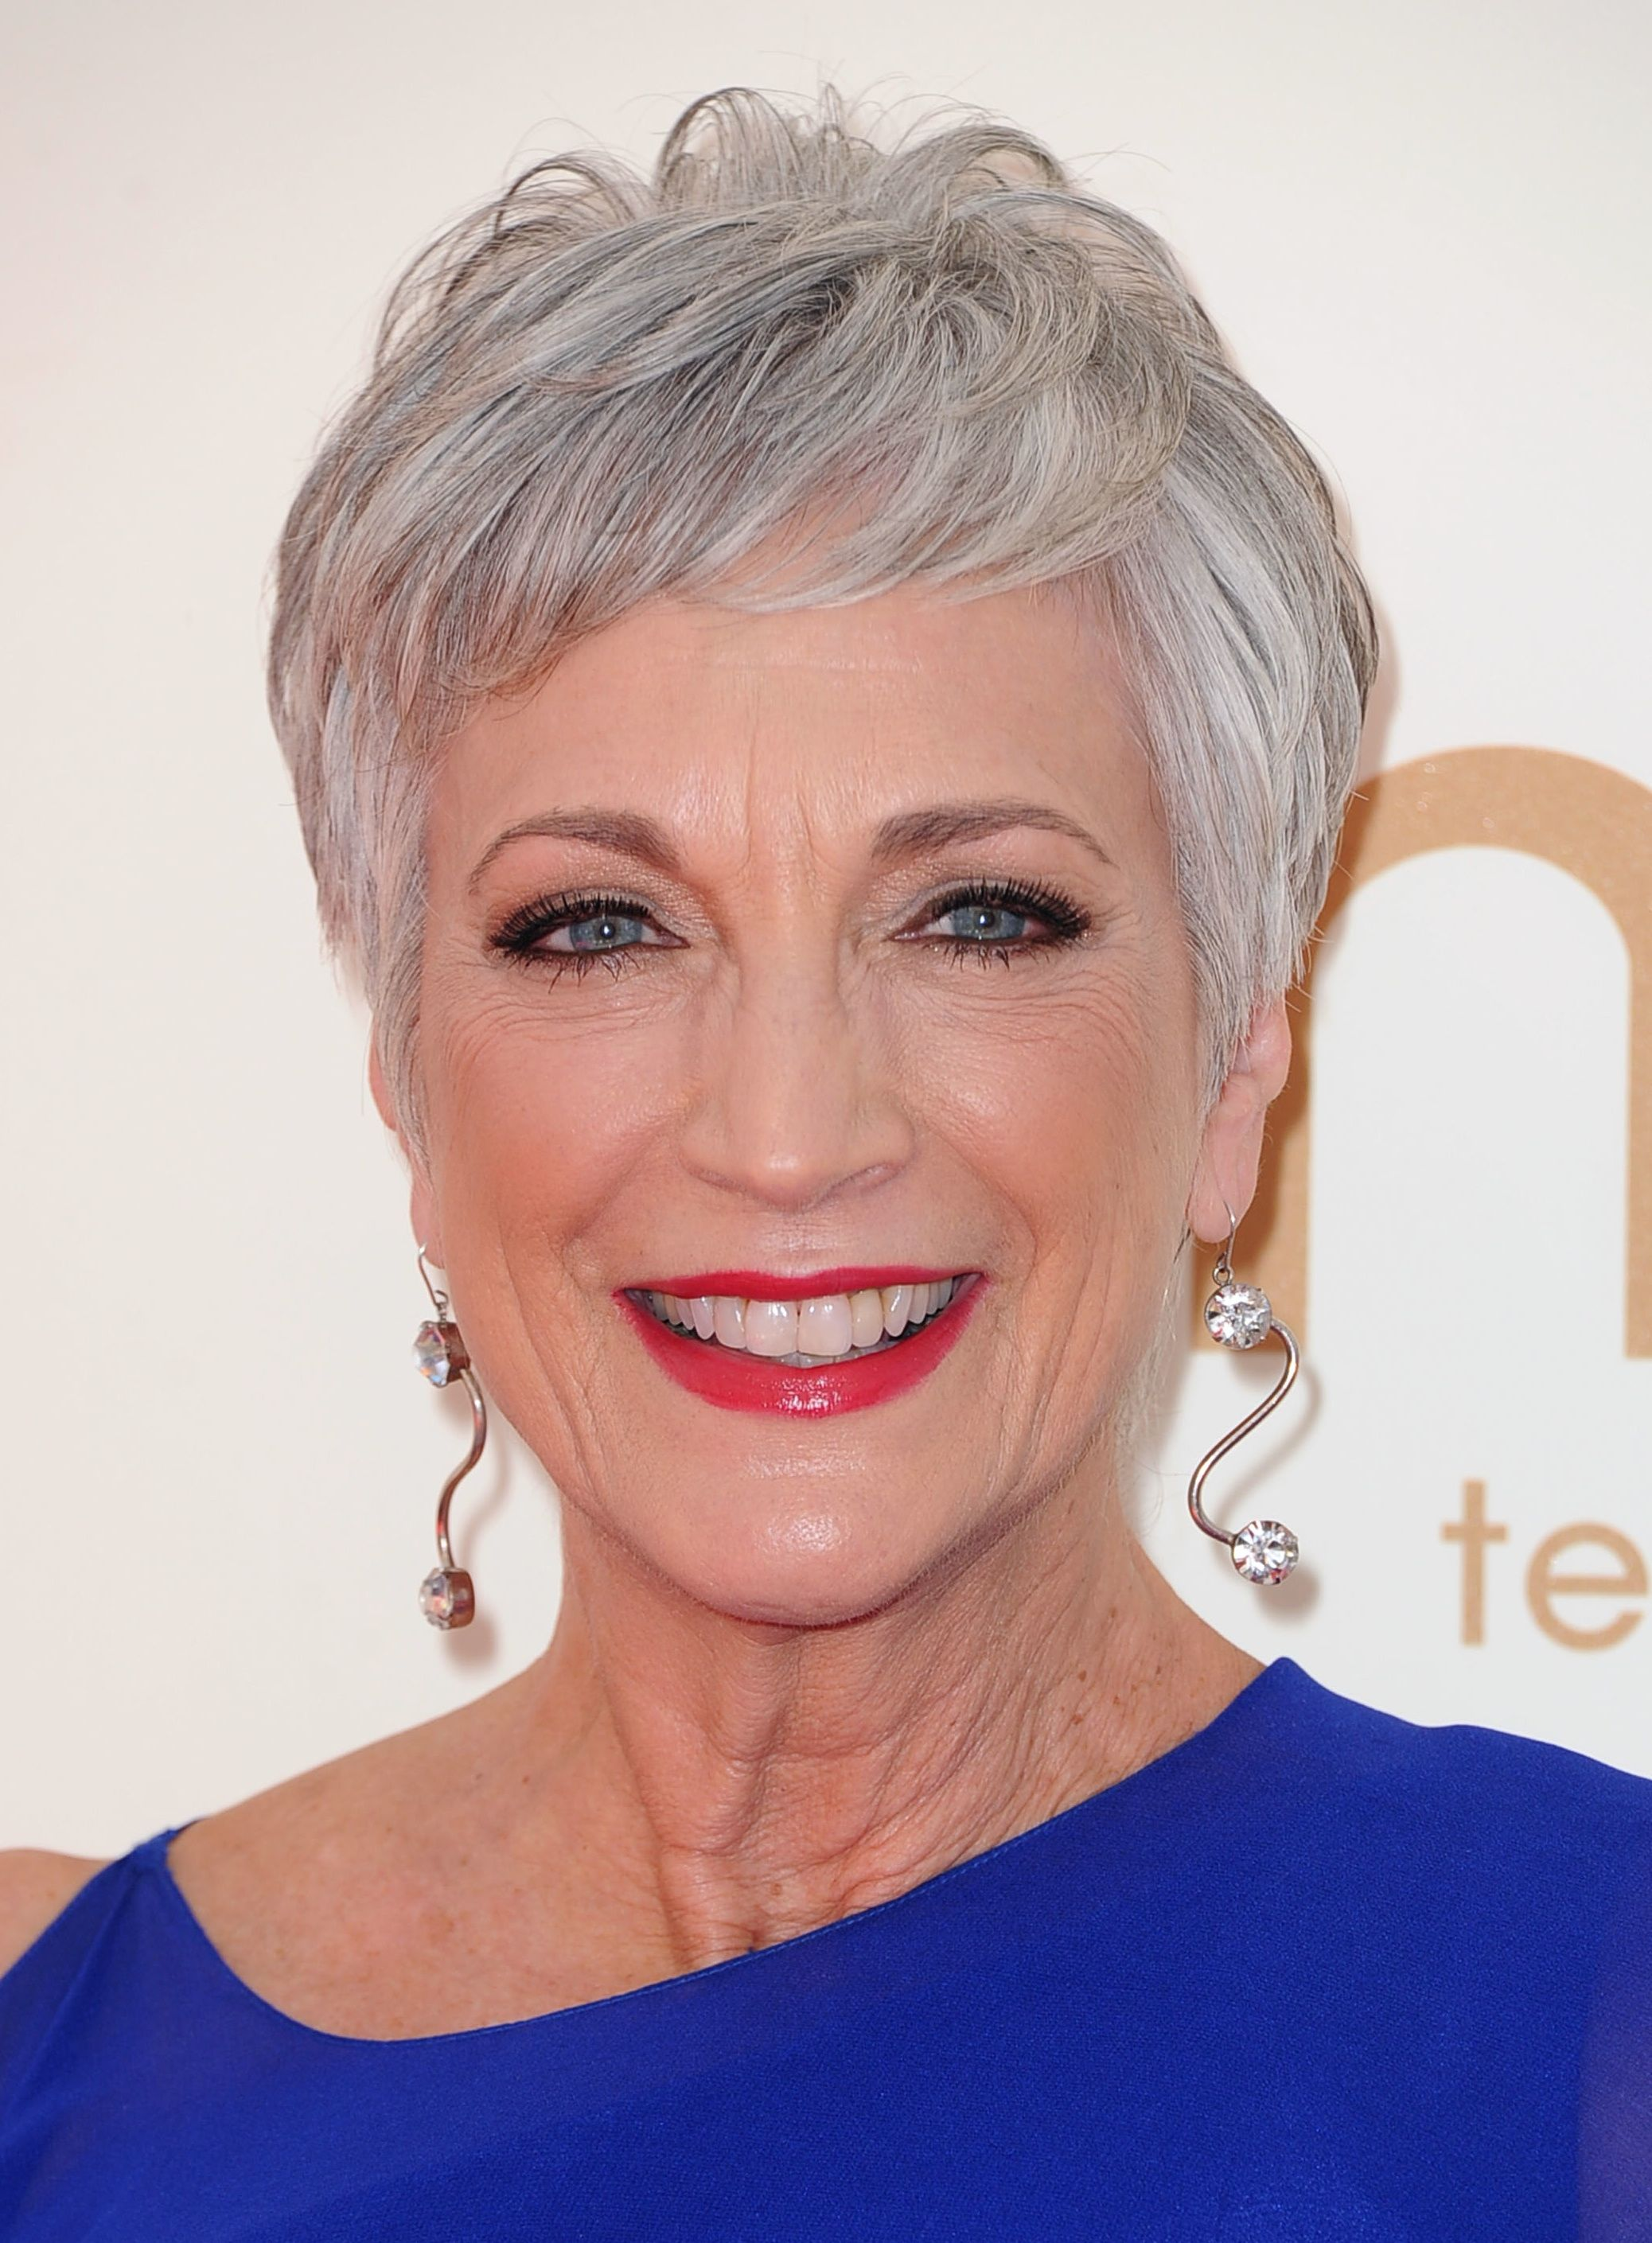 Why You Should Not Color Your Awesome Gray Or Silver Hair Hair Styles For Women Over 50 Short Grey Hair Short Hair Styles